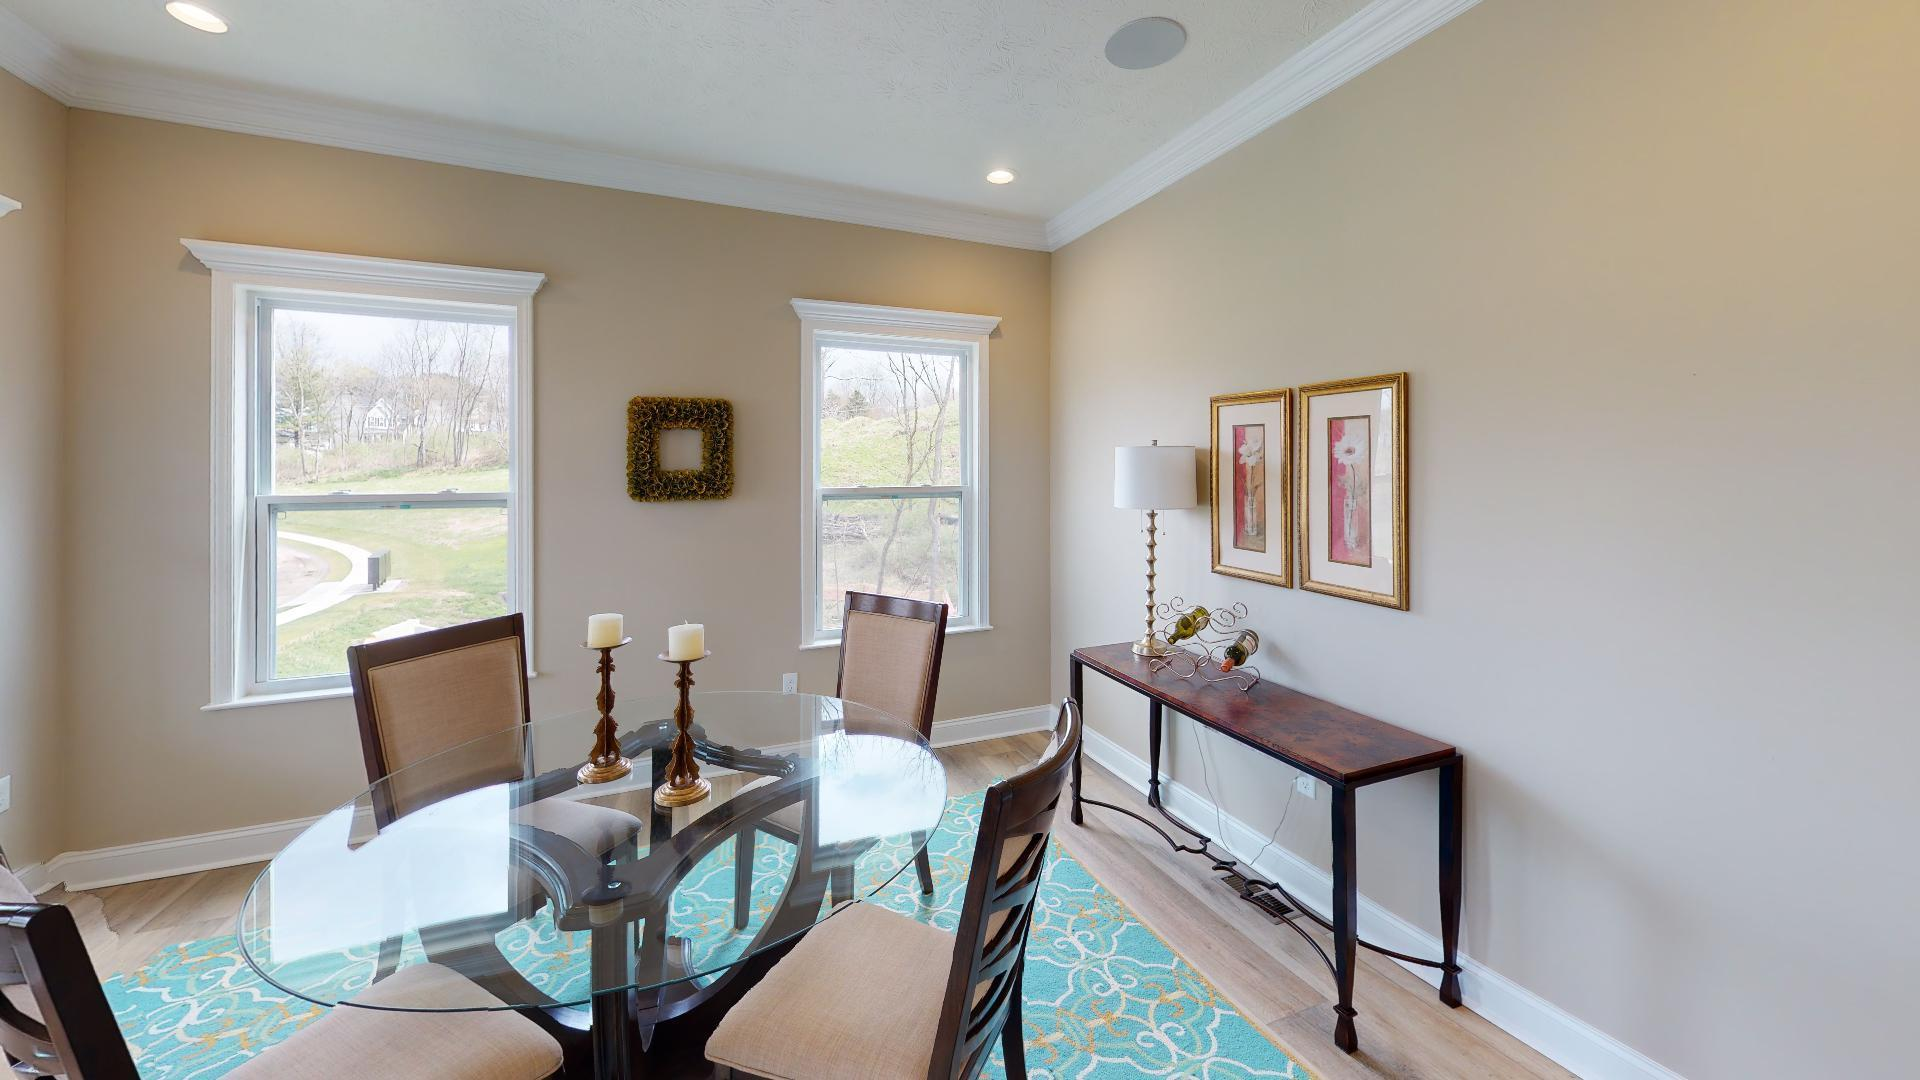 Kitchen featured in the Hoover By Maronda Homes in Pittsburgh, PA